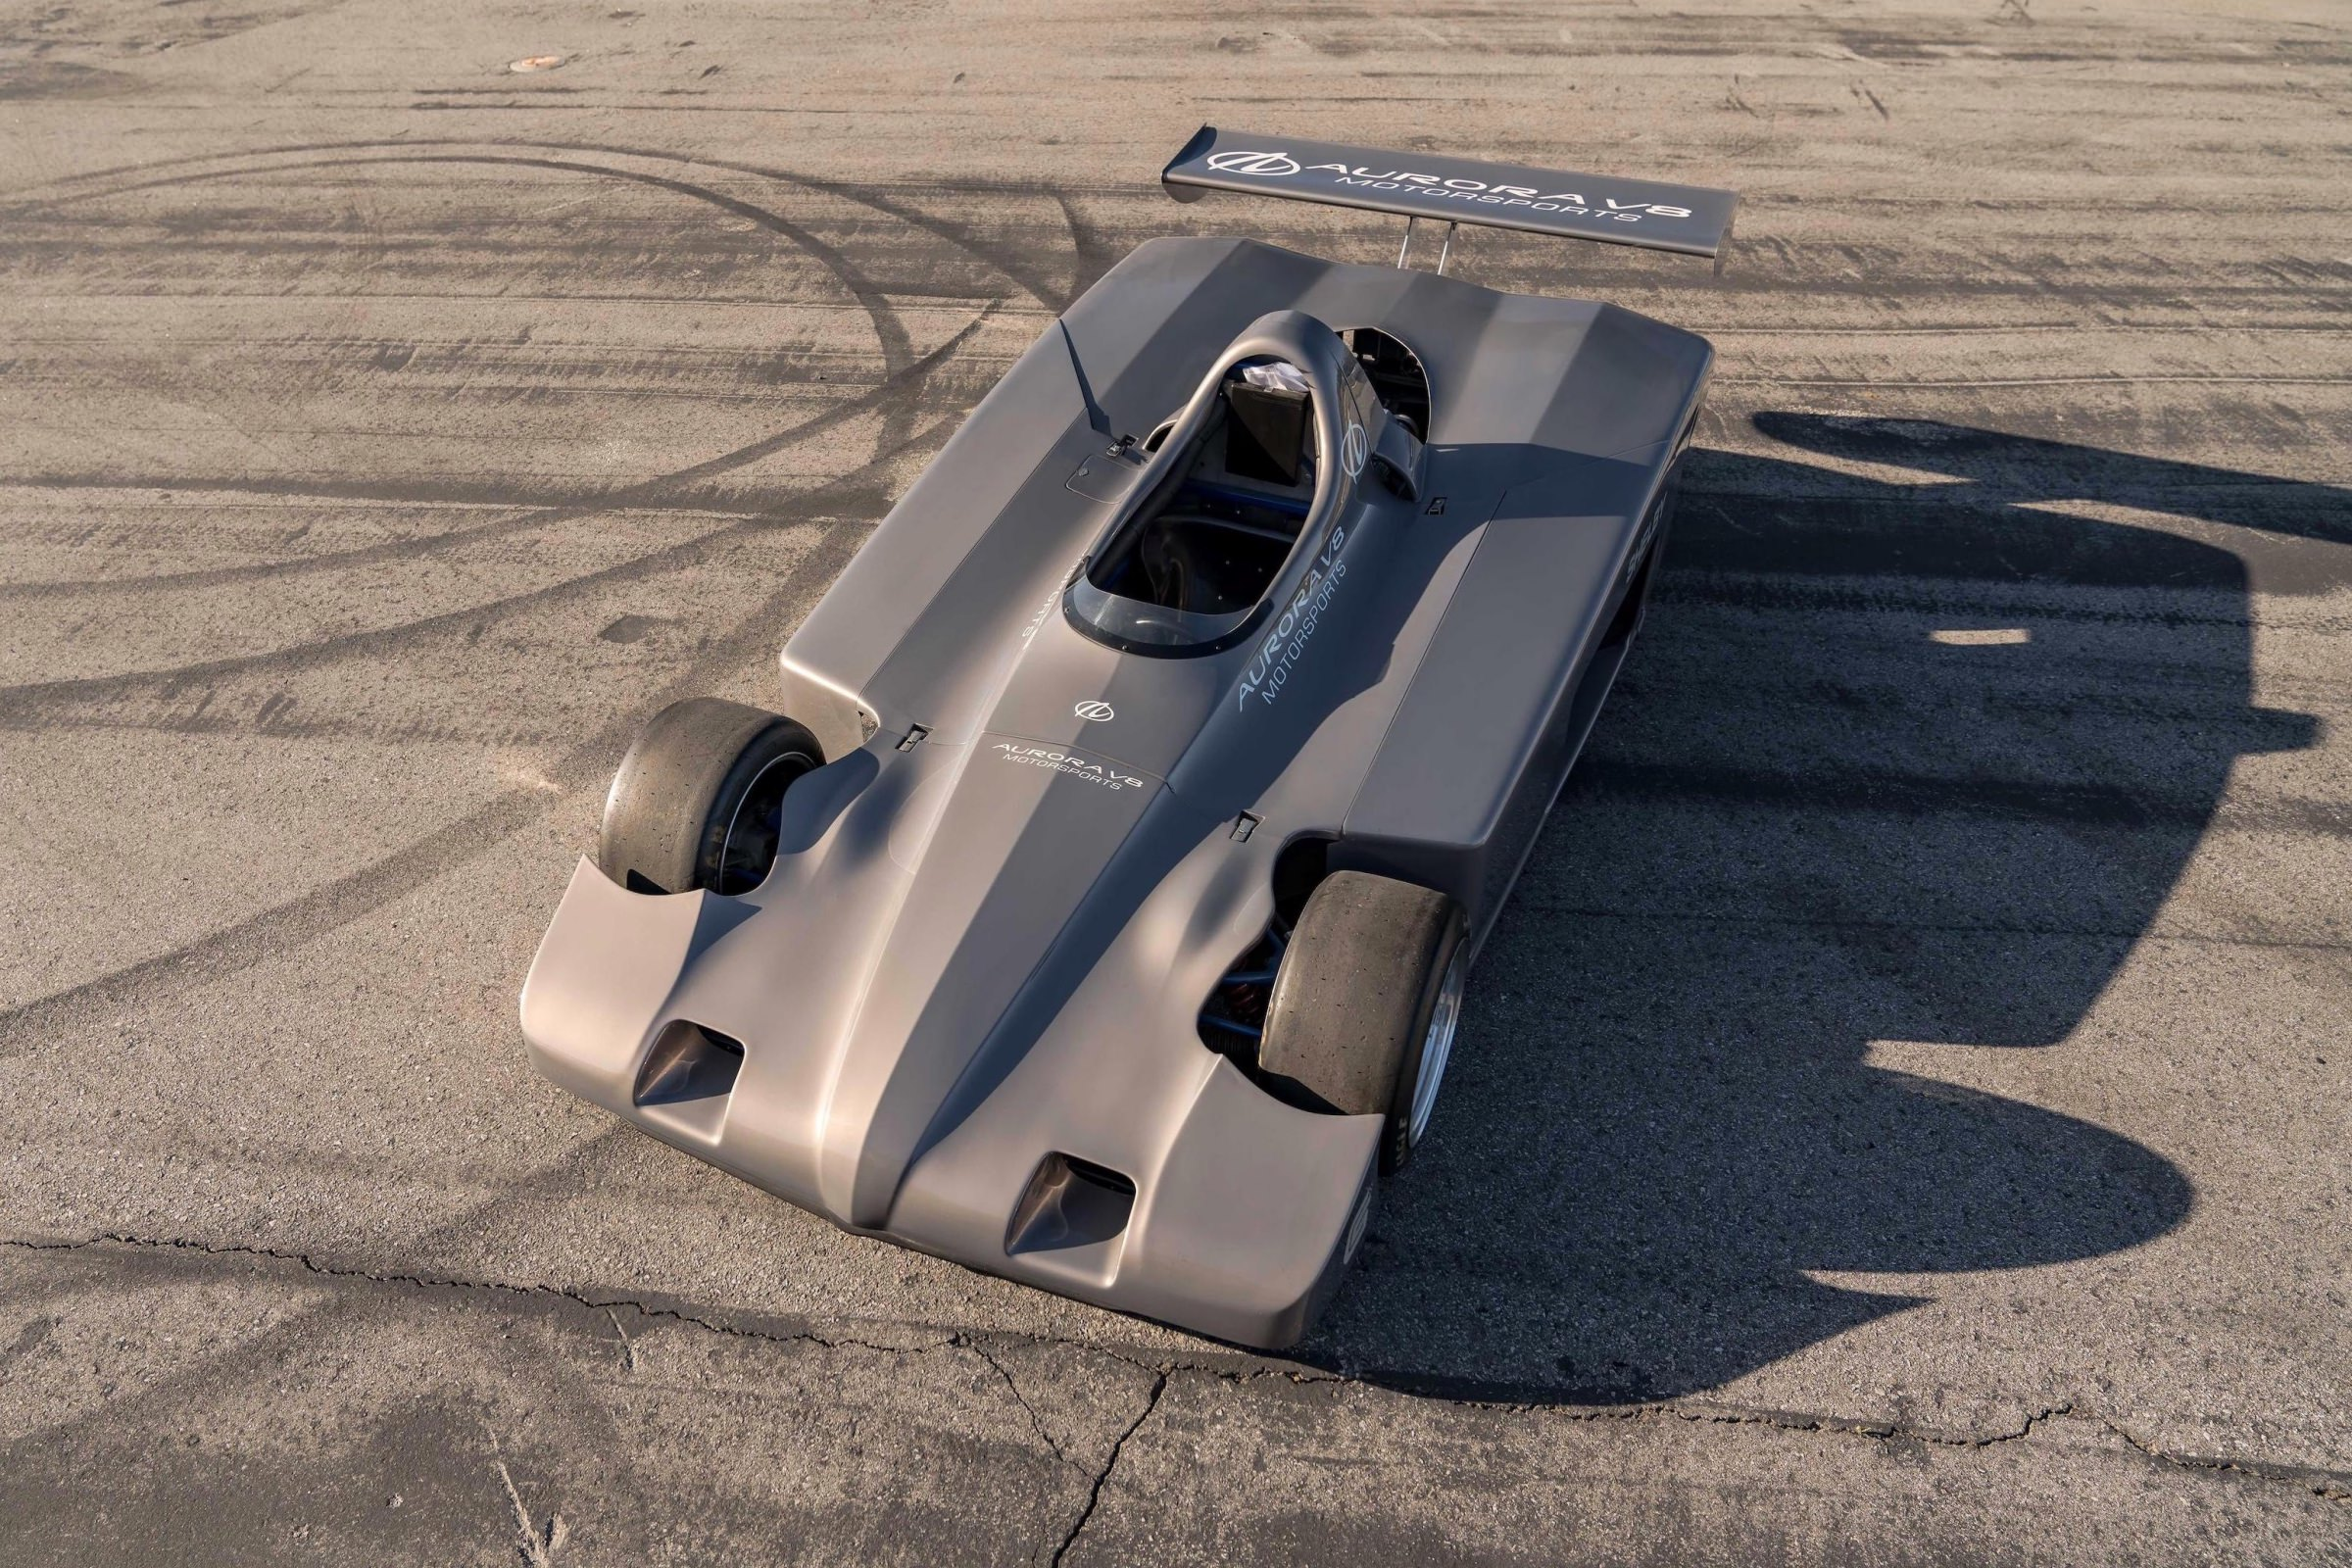 Shelby Aurora V8 CAN-AM